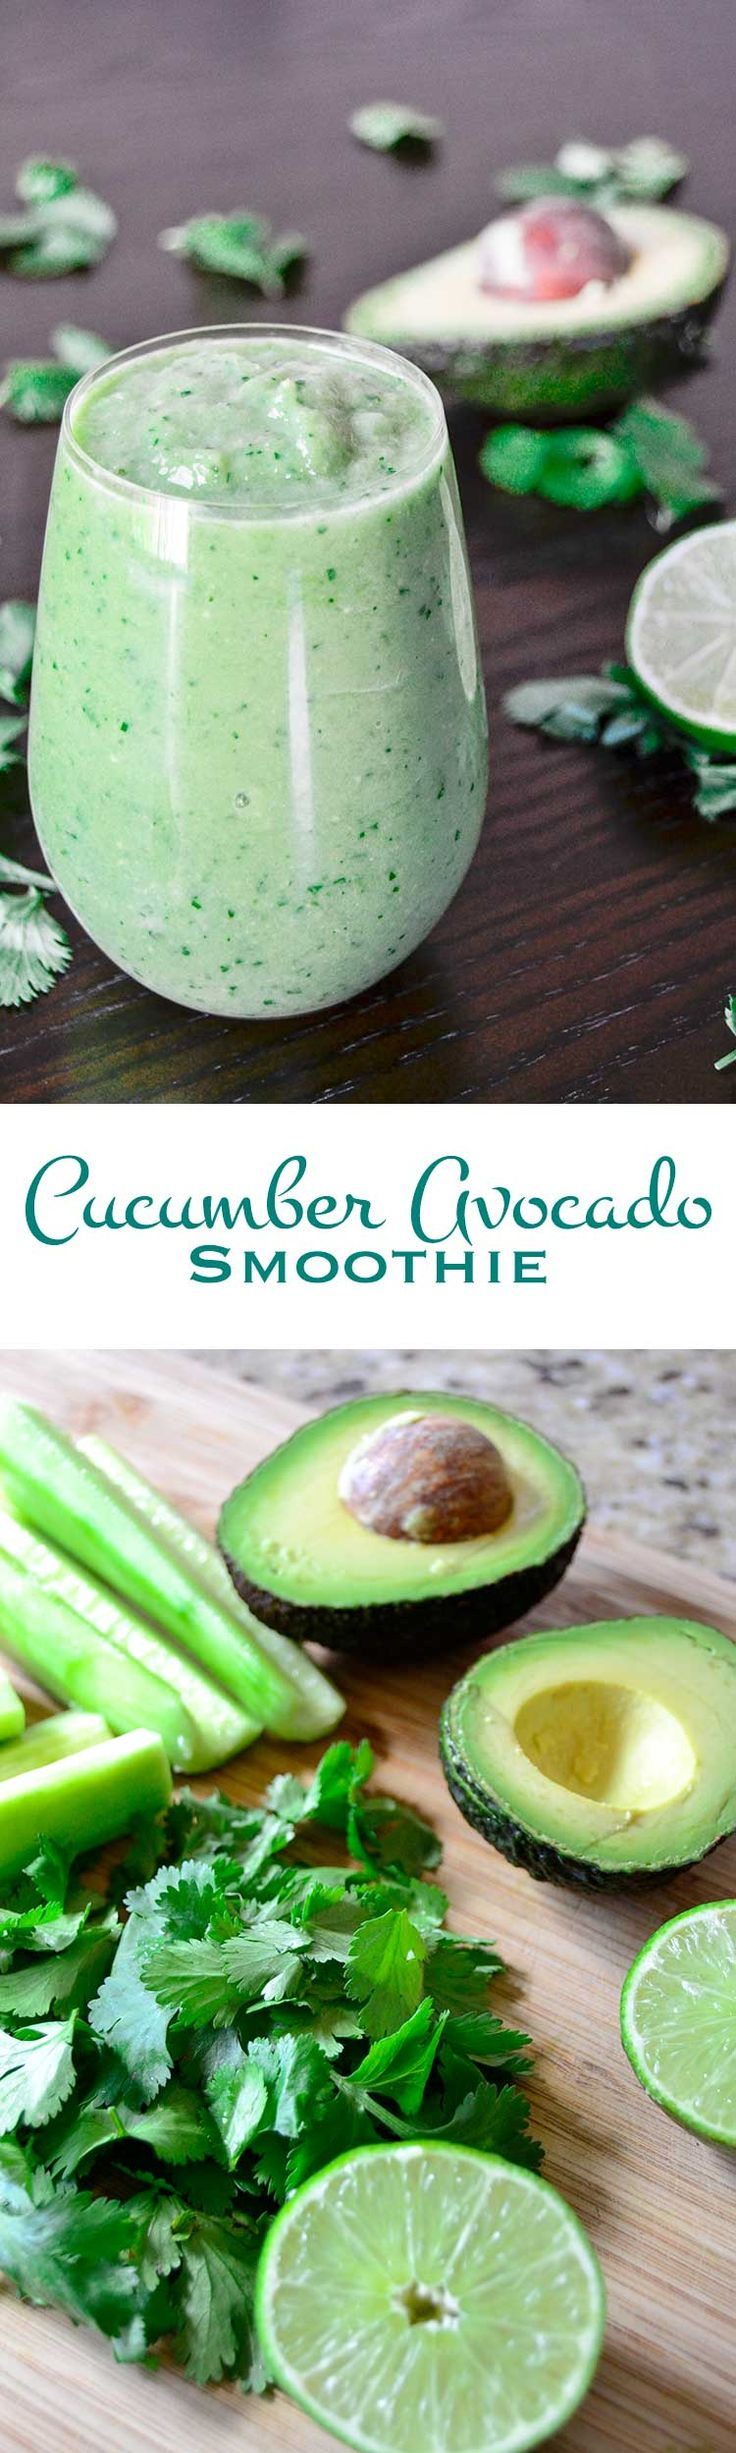 Cucumber Avocado Smoothie | Buttery avocado, crisp cucumber, earthy cilantro, and bright lime juice combine to make this cucumber avocado smoothie a great way to start your day. @RNsKitchen